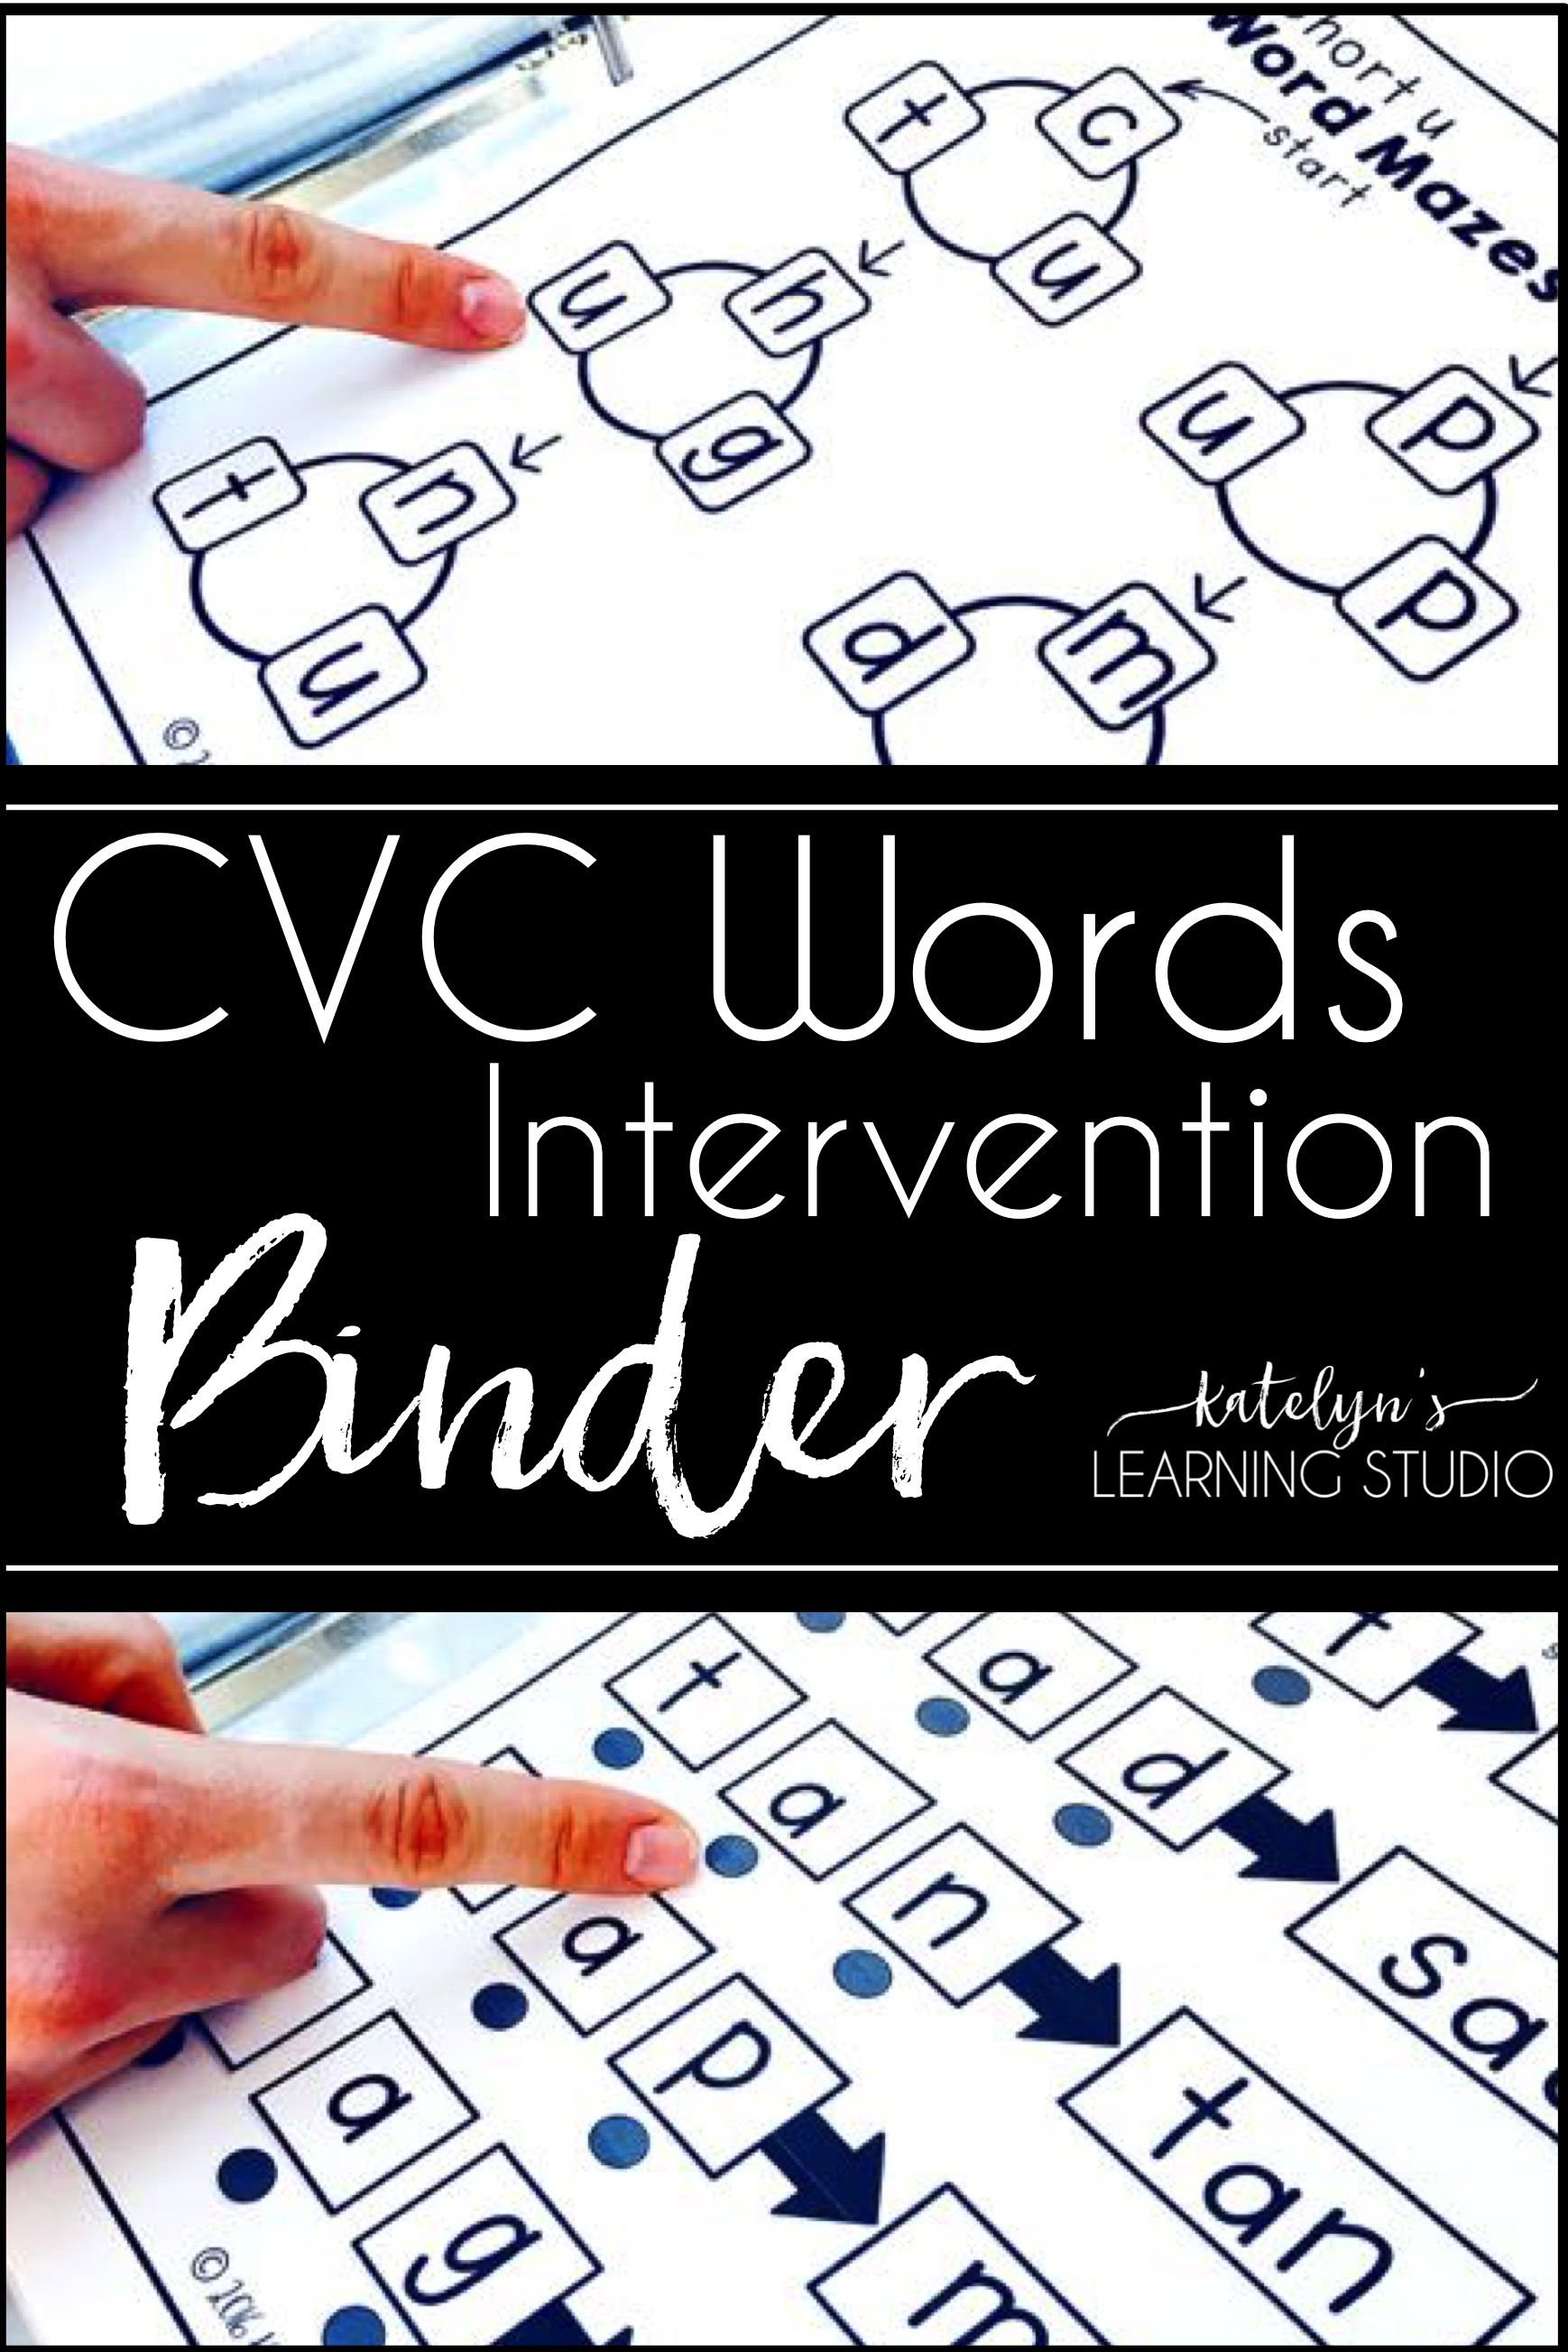 Cvc Words Intervention